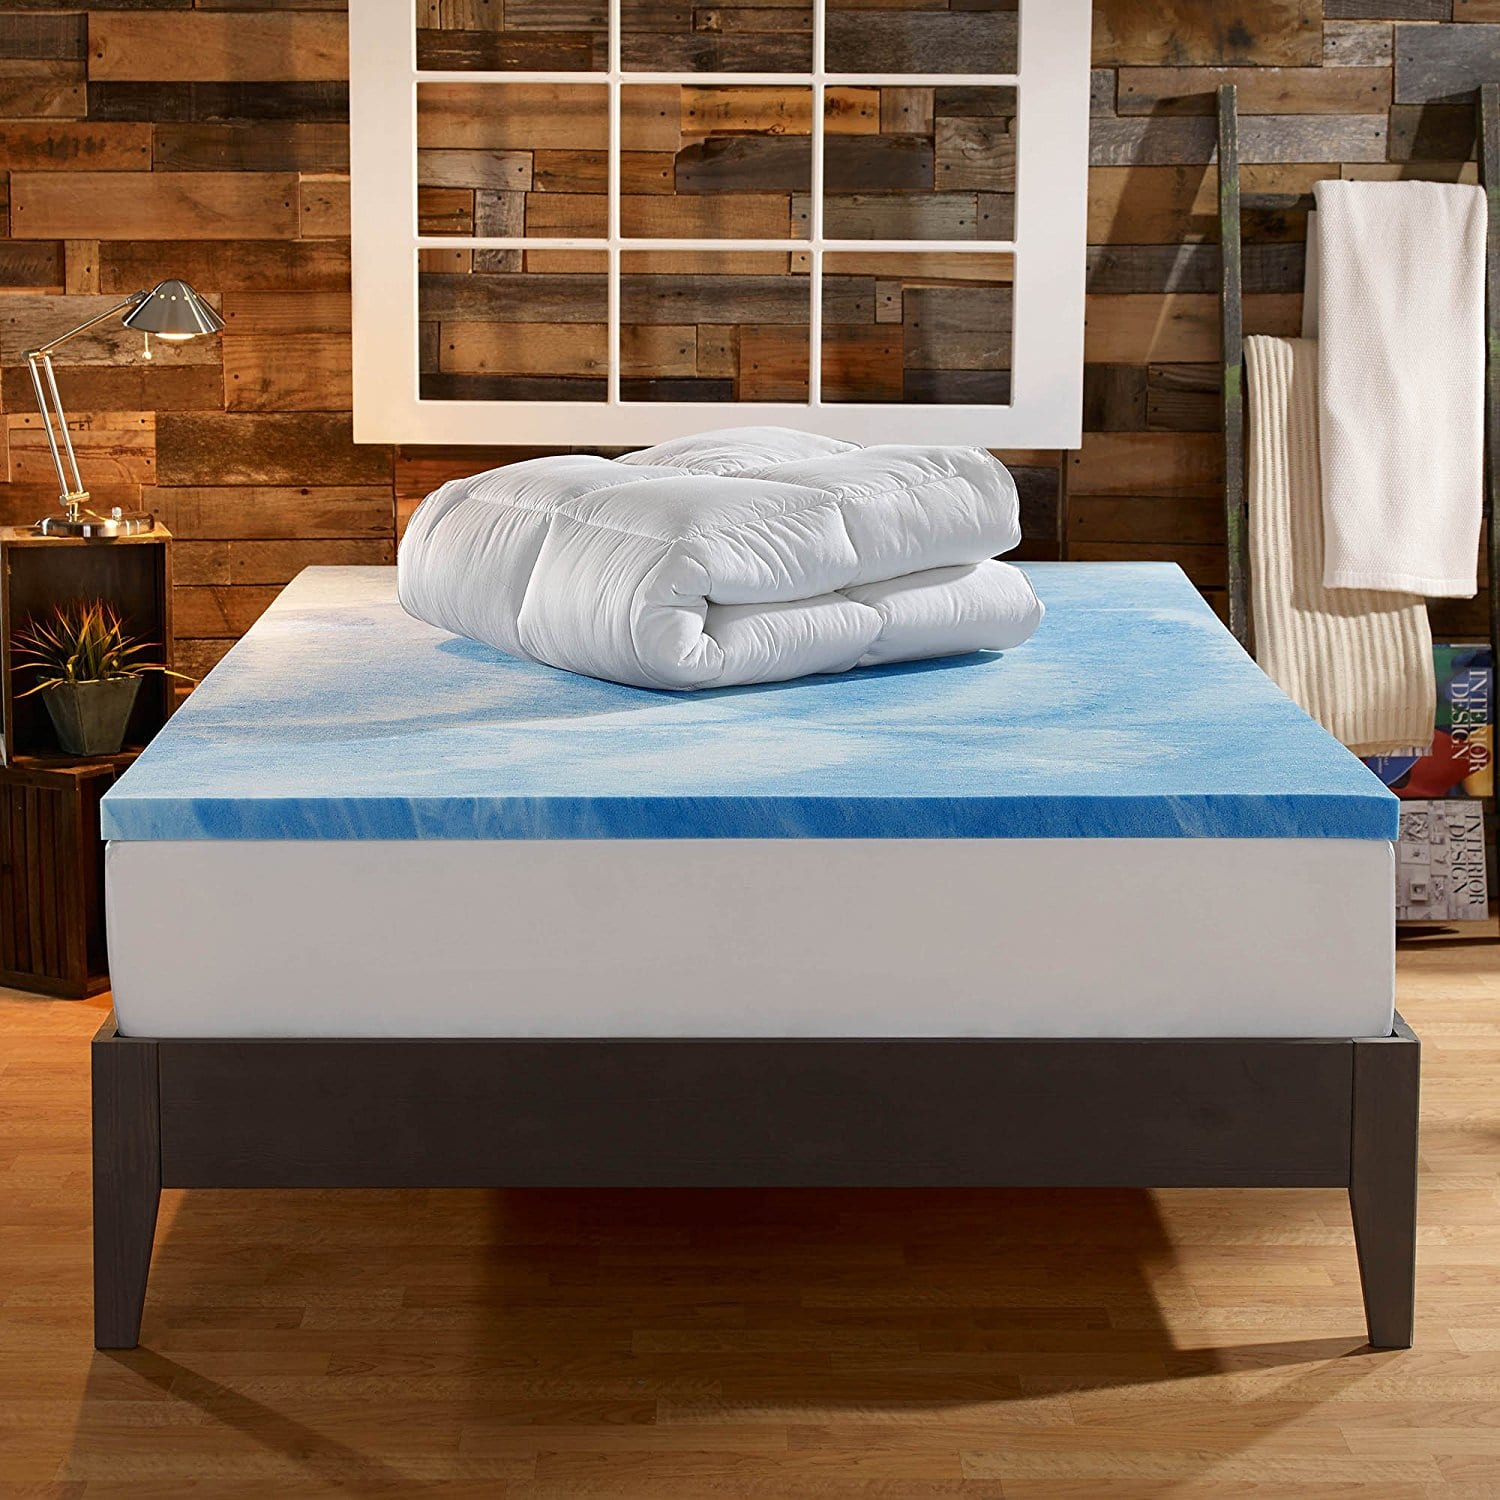 Sleep Innovations Best Memory Foam Mattress Topper Review by www.snoremagazine.com